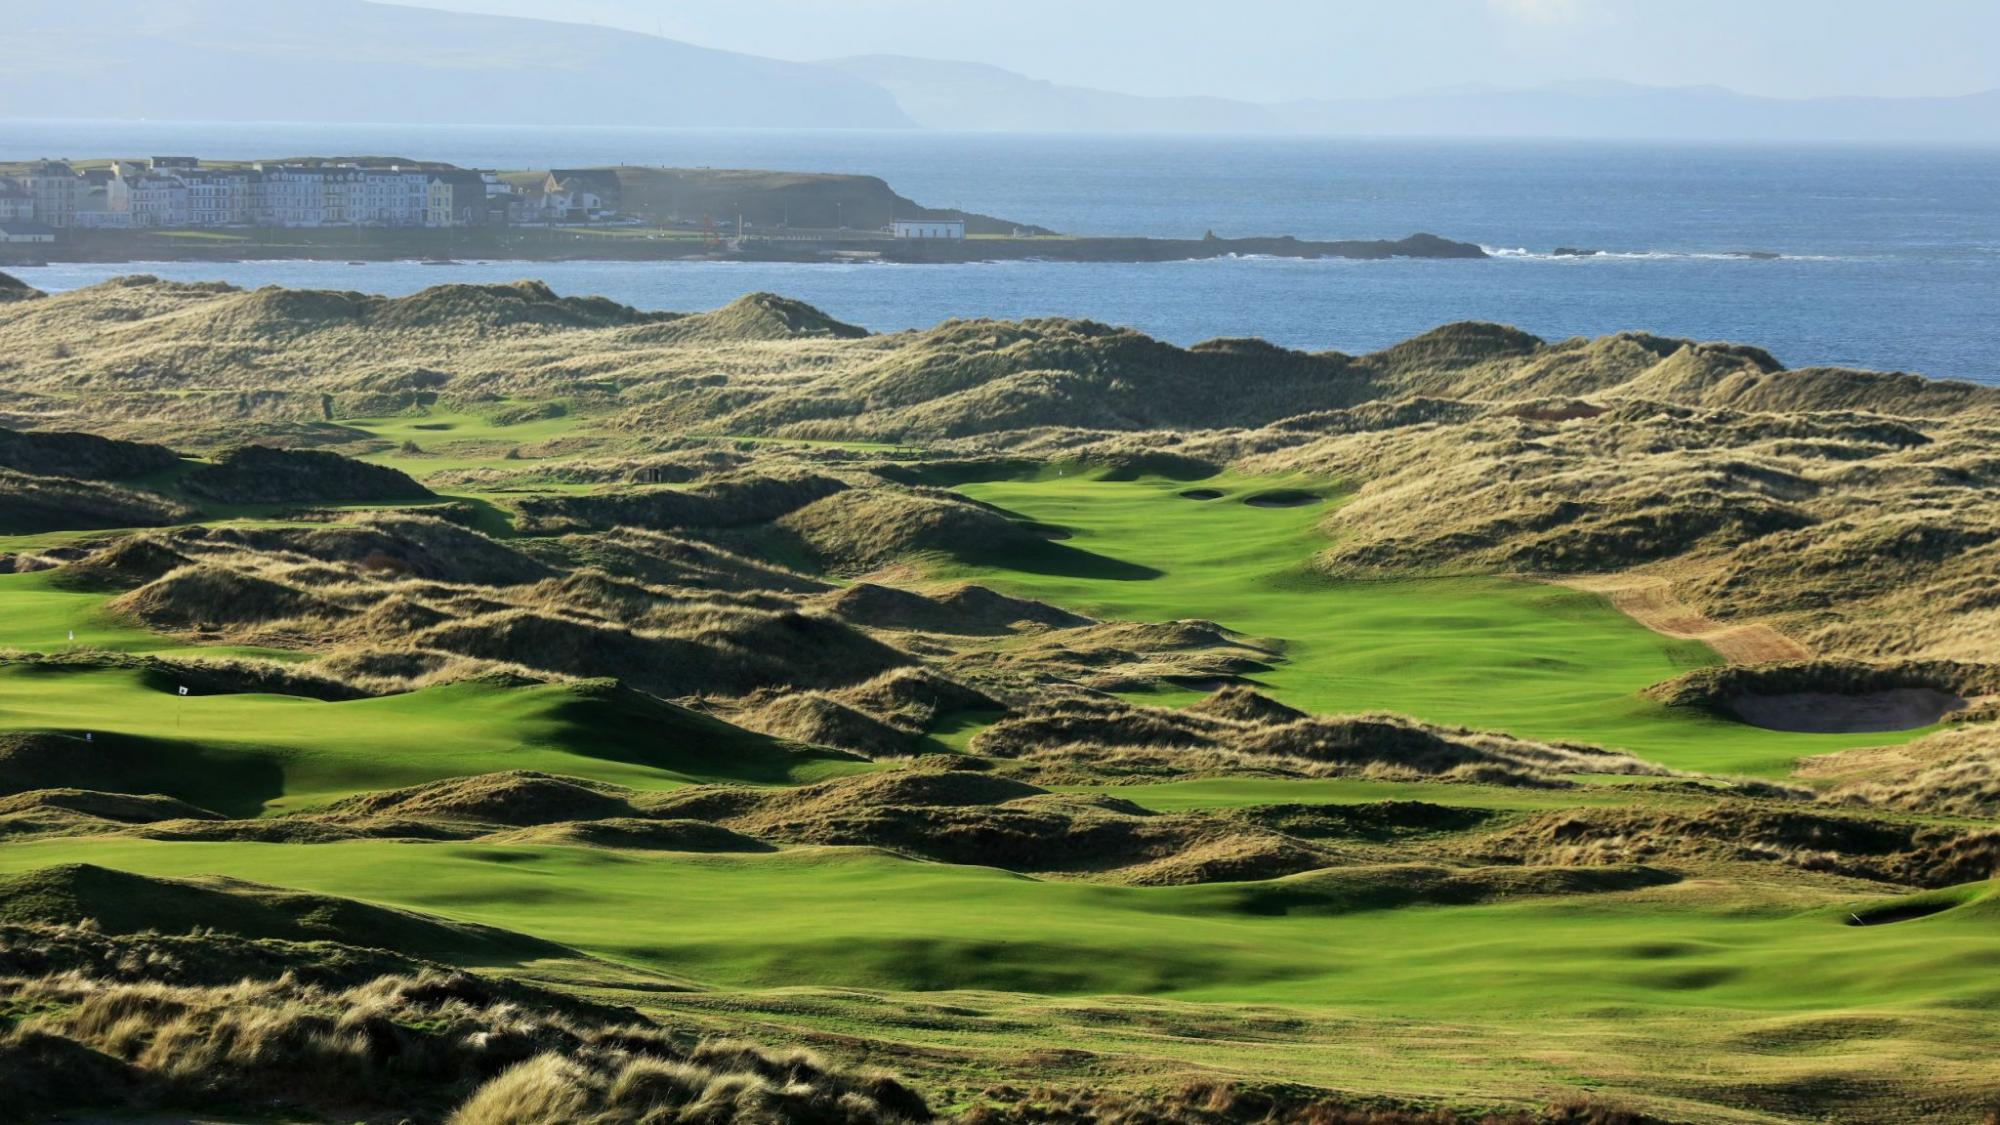 The Royal Portrush Golf Club home of the 148th Open Championship sucess of Shane Lowry